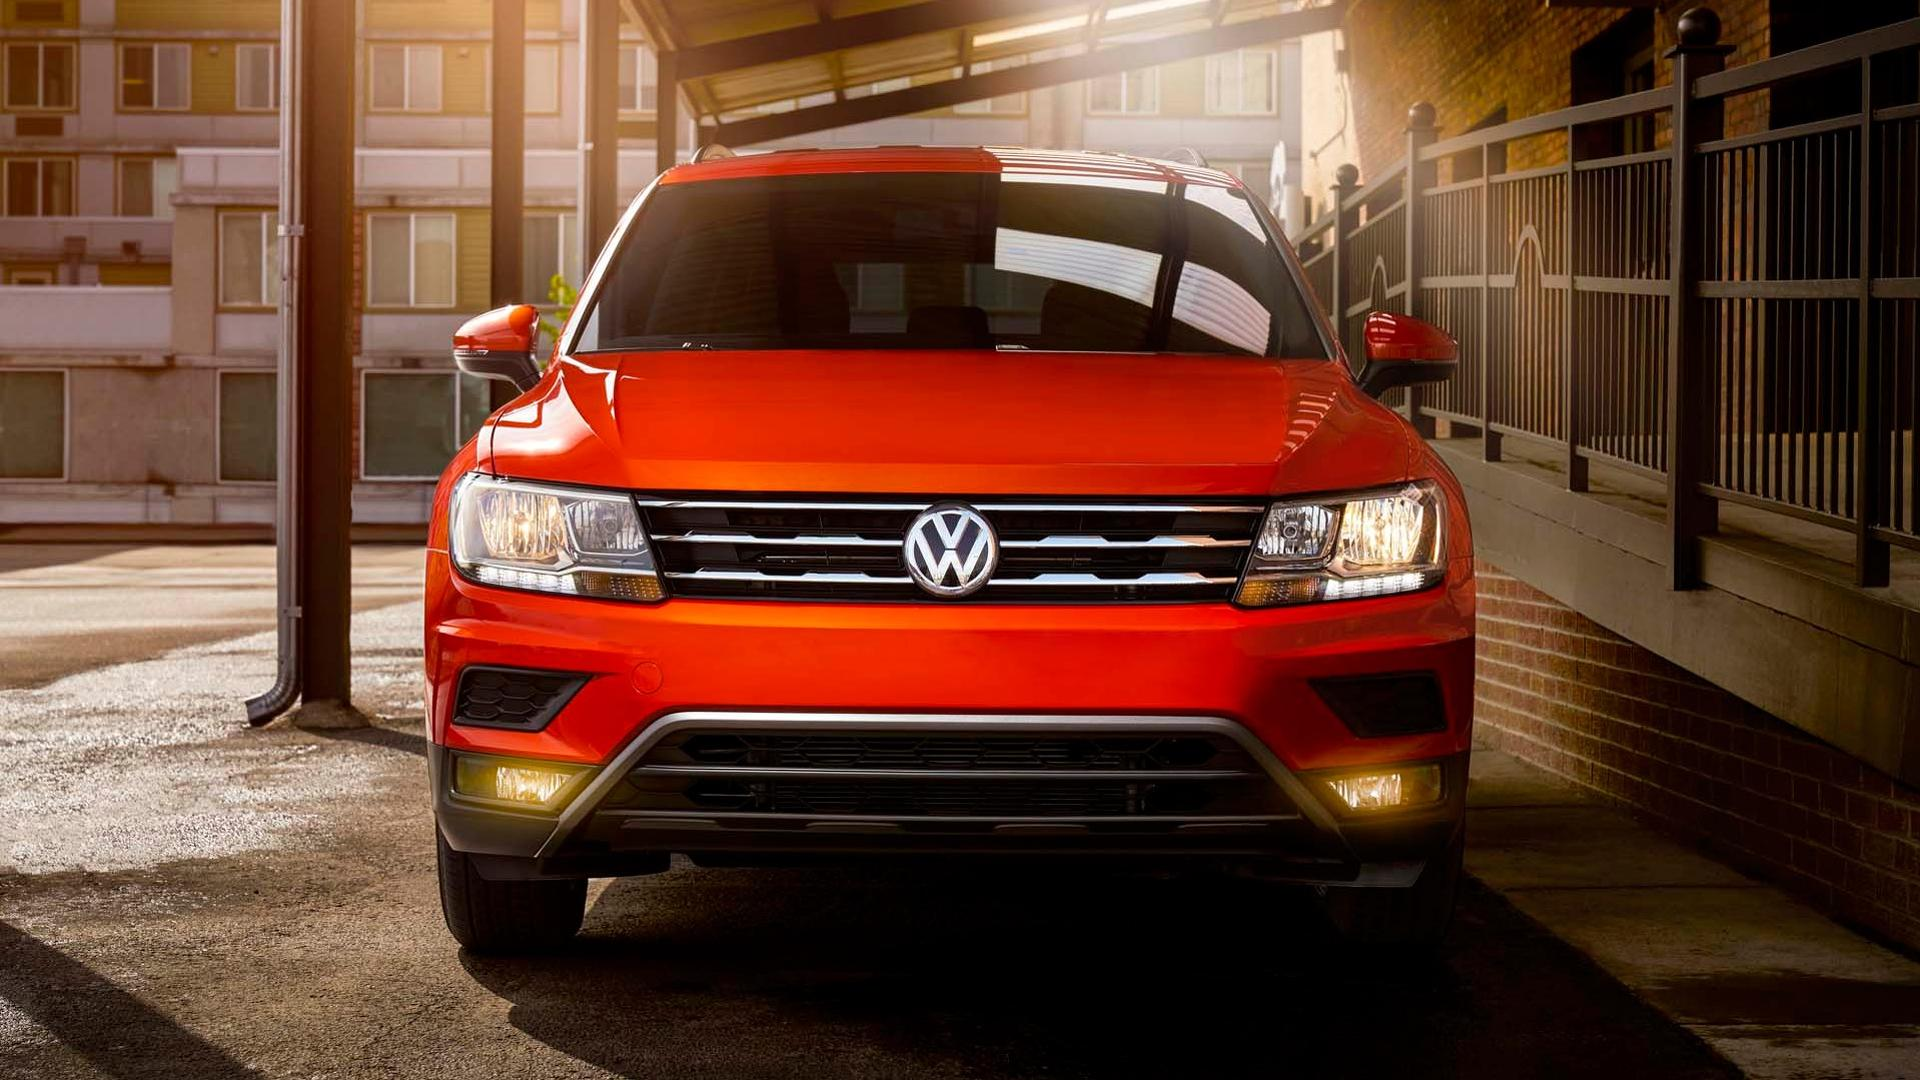 Vw Tiguan Fuse Box Recall Basic Wiring Schematic 2011 700000 Tiguans And Tourans Recalled Over Roof Lighting Issues Volkswagen Fuses